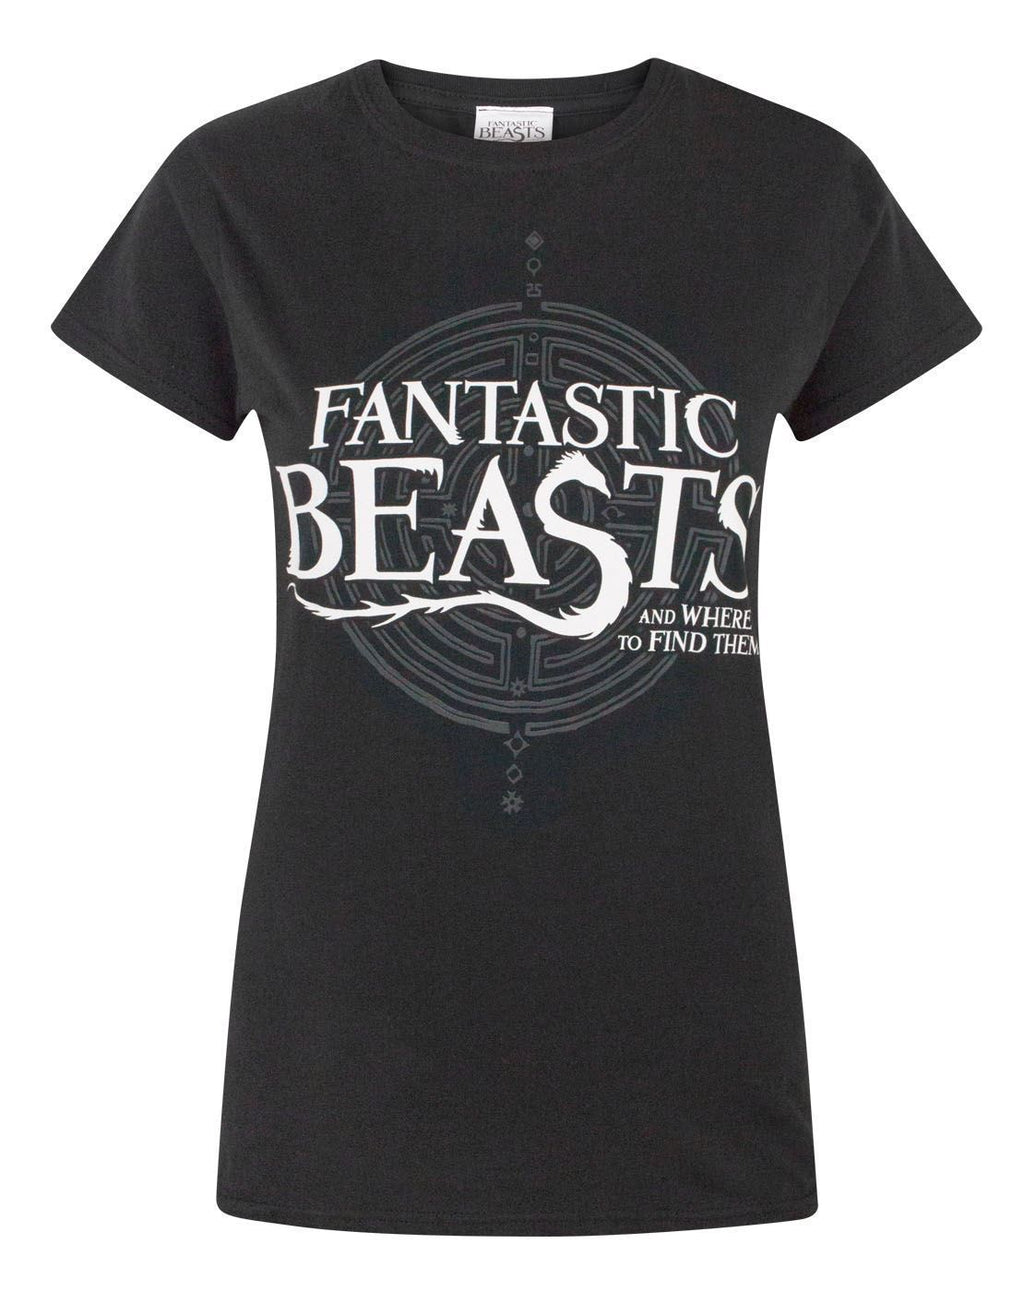 Fantastic Beasts And Where To Find Them Logo Women's T-Shirt